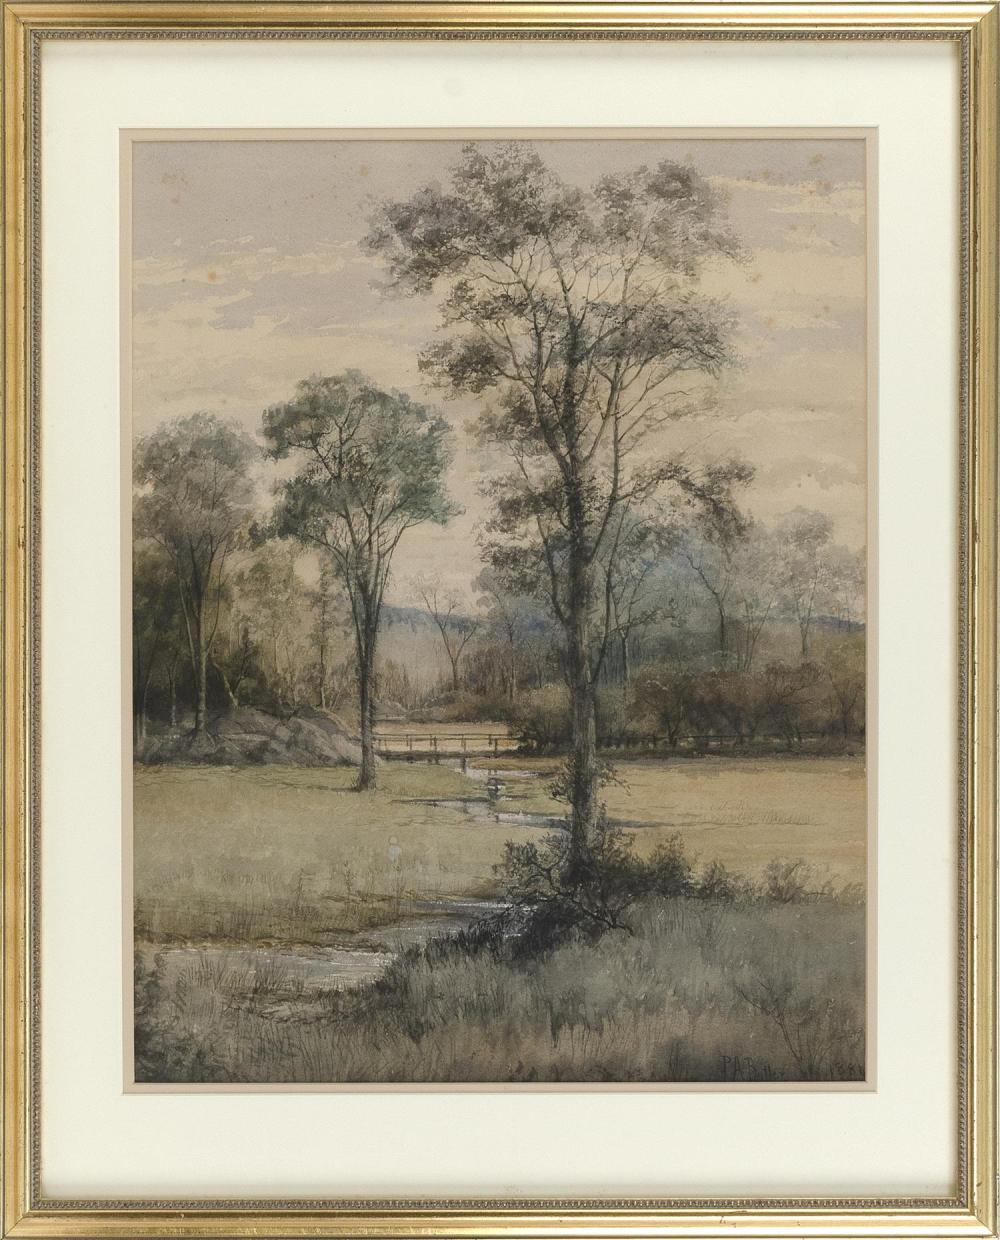 """AMERICAN SCHOOL, 19th Century, A bridge over a creek., Watercolor on paper, 22.25"""" x 17.75"""". Framed 29.5"""" x 23.5""""."""